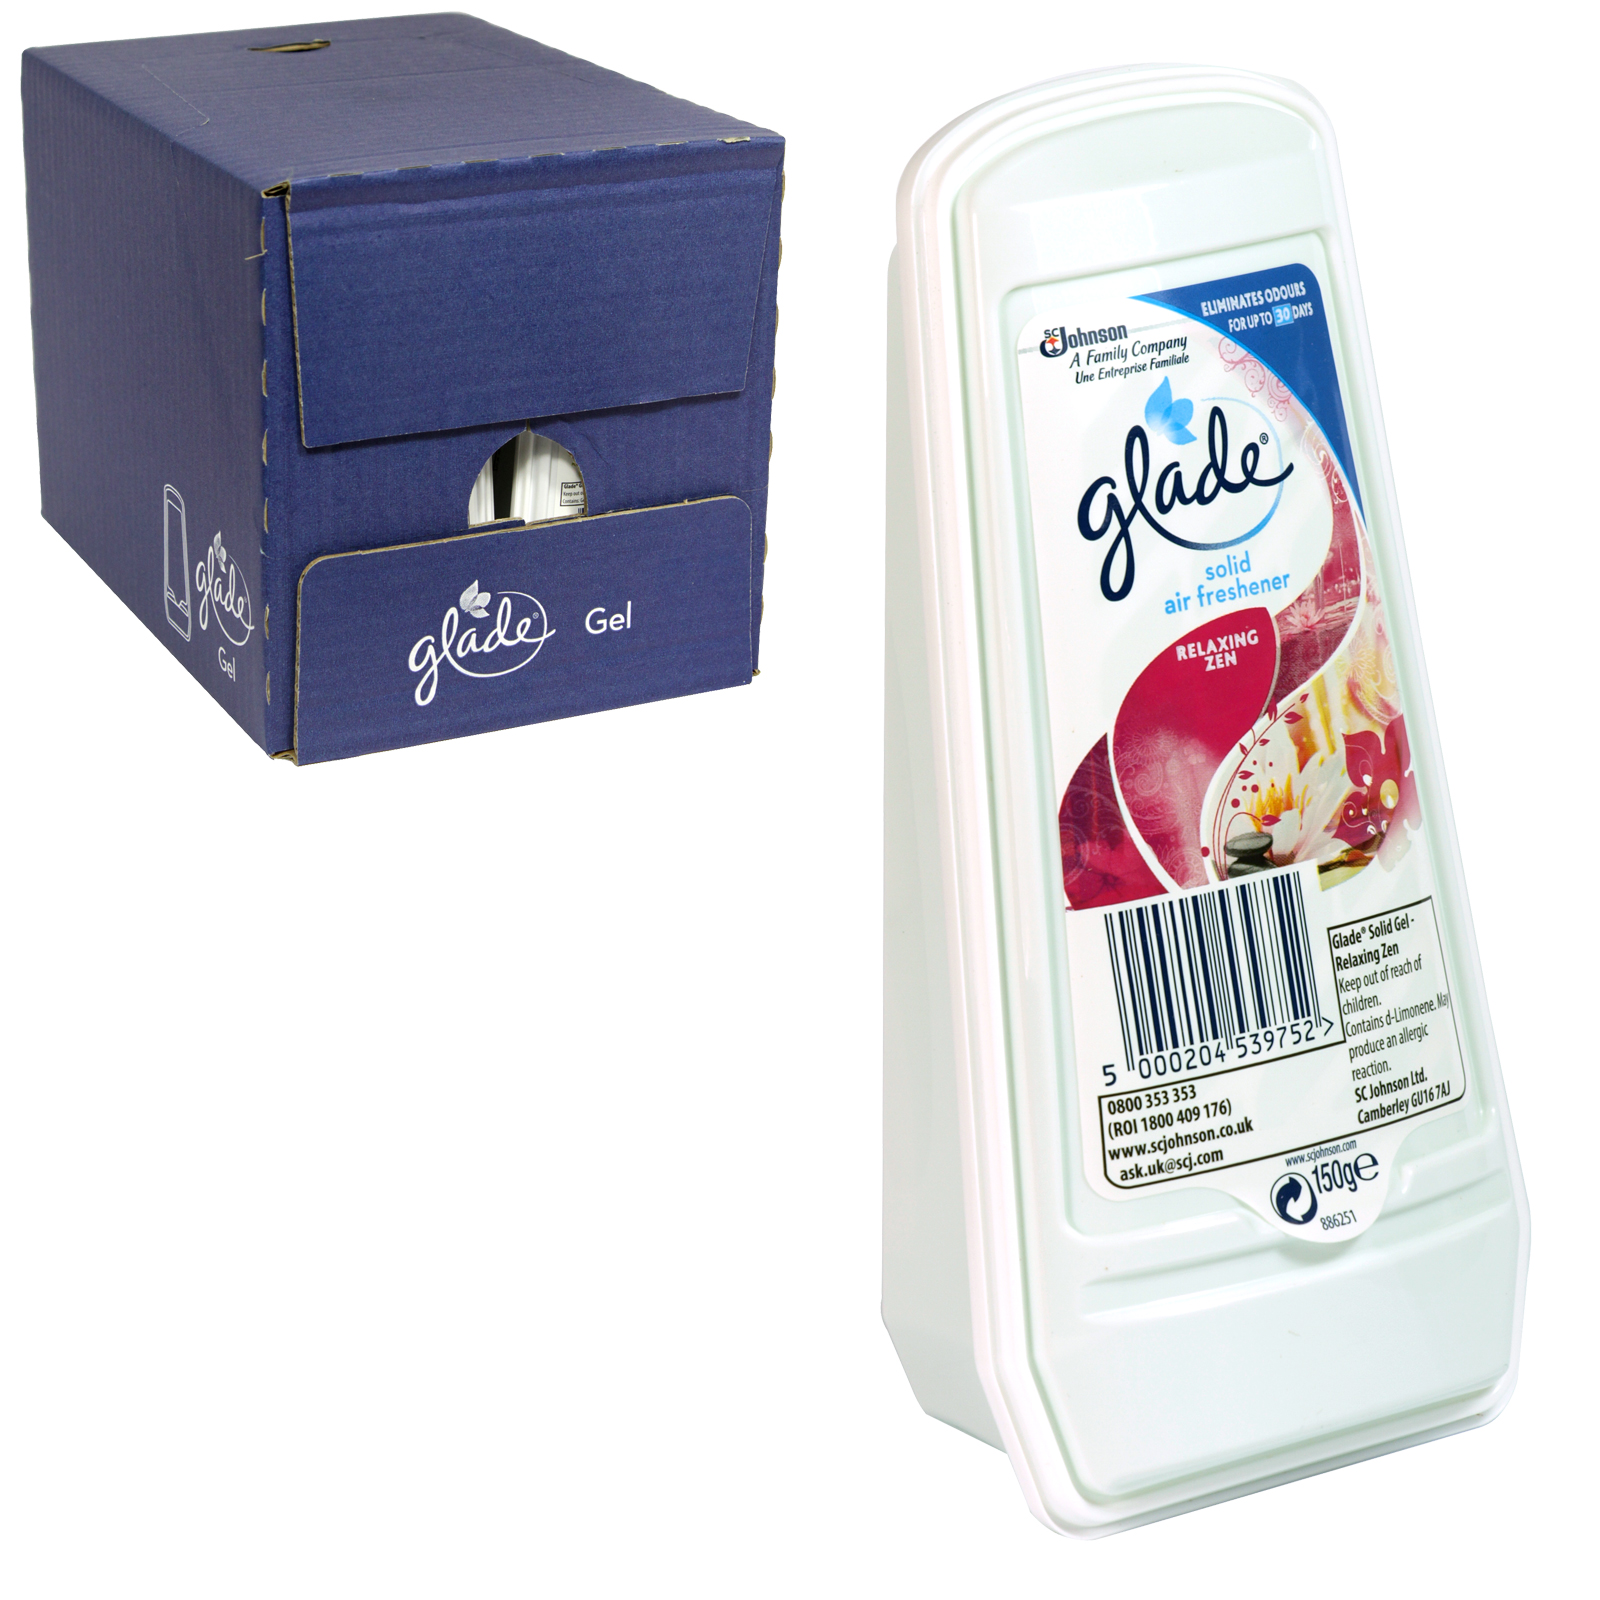 GLADE ESSENCE SOLID GEL 150GM RELAXING ZEN X8